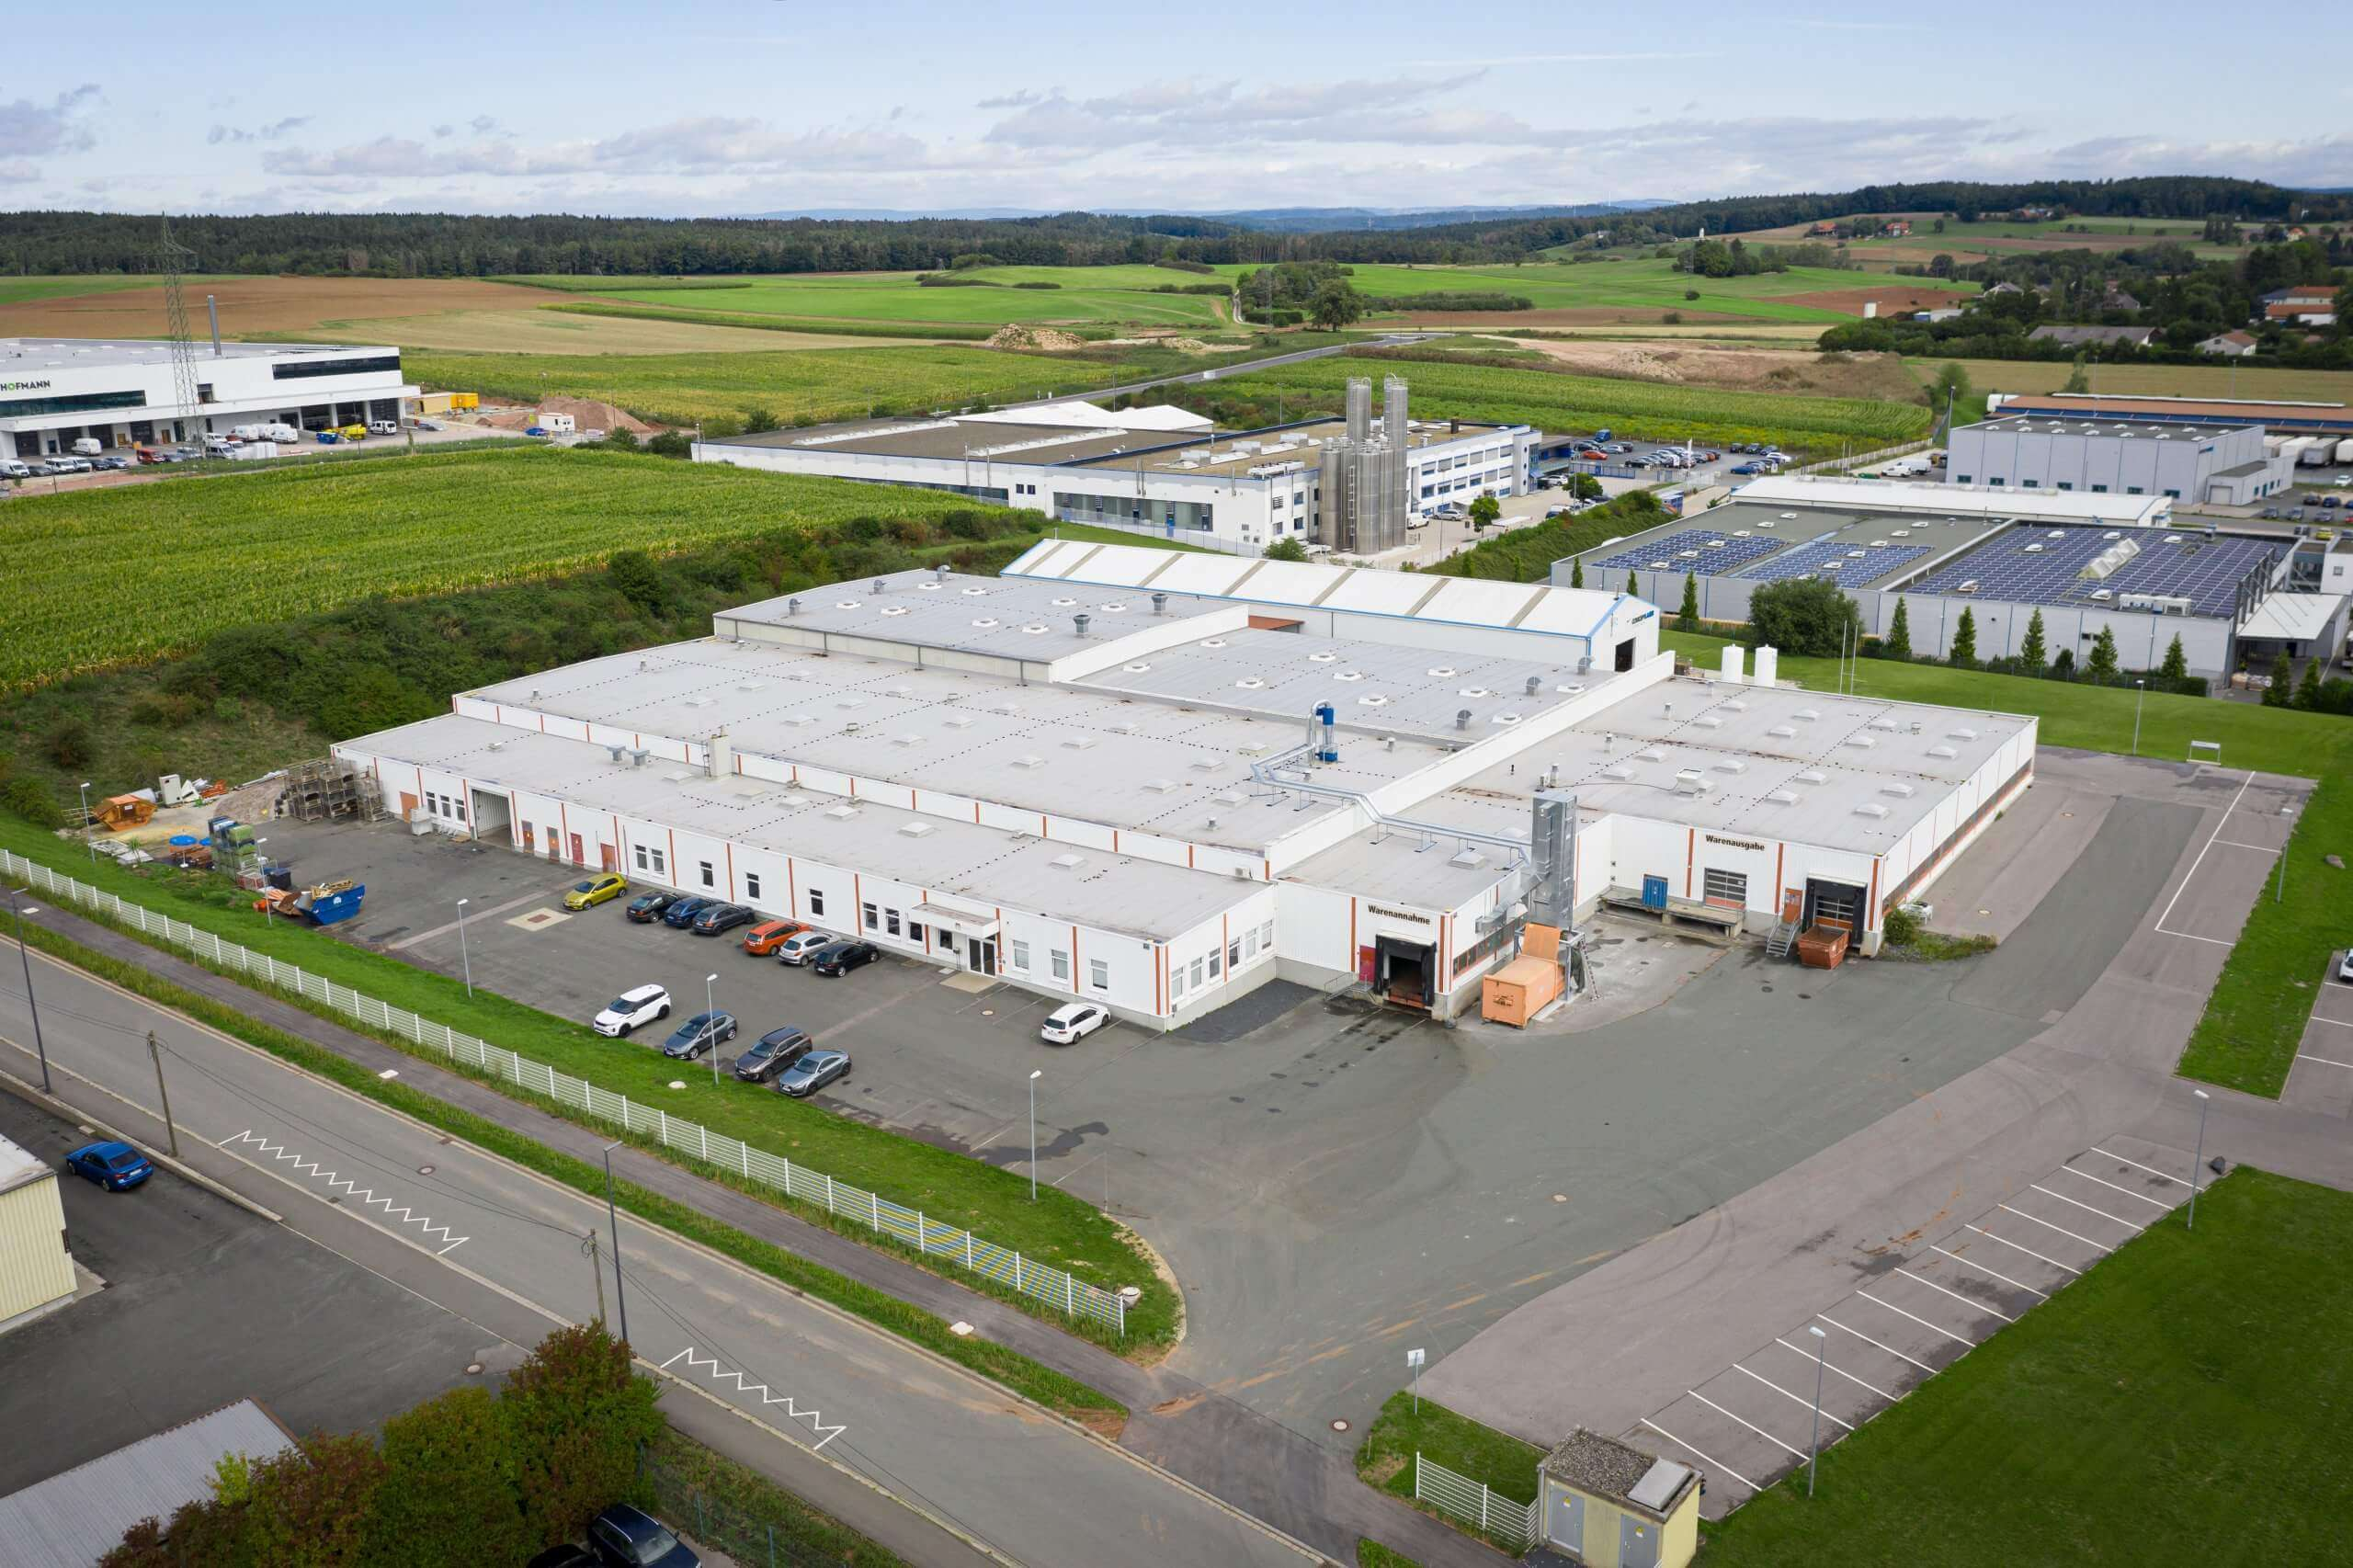 Aerial view of easy2cool GmbH in Lichtenfels, Bavaria